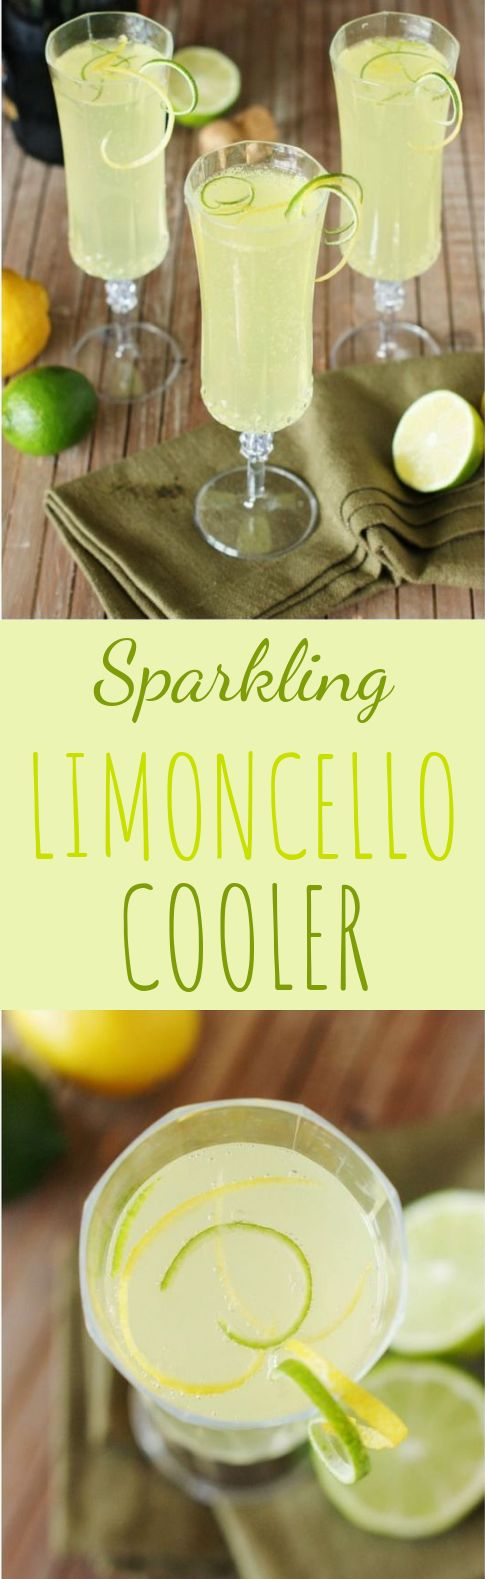 Sparkling Limoncello Cooler #cocktail #summer